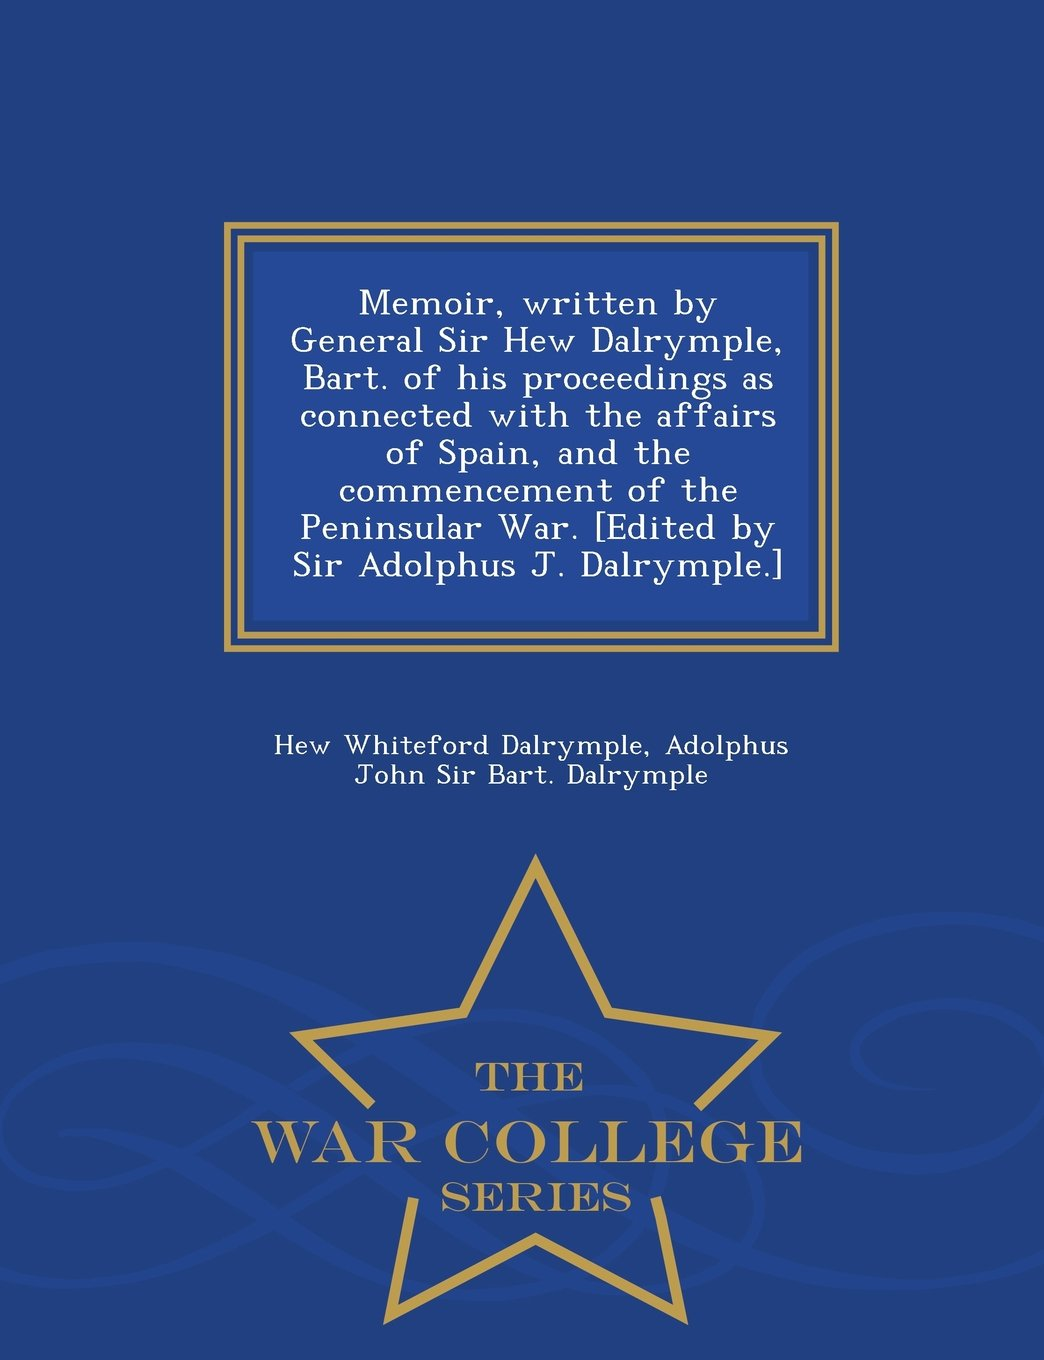 Memoir, written by General Sir Hew Dalrymple, Bart. of his proceedings as connected with the affairs of Spain, and the commencement of the Peninsular ... Adolphus J. Dalrymple.] - War College Series ebook